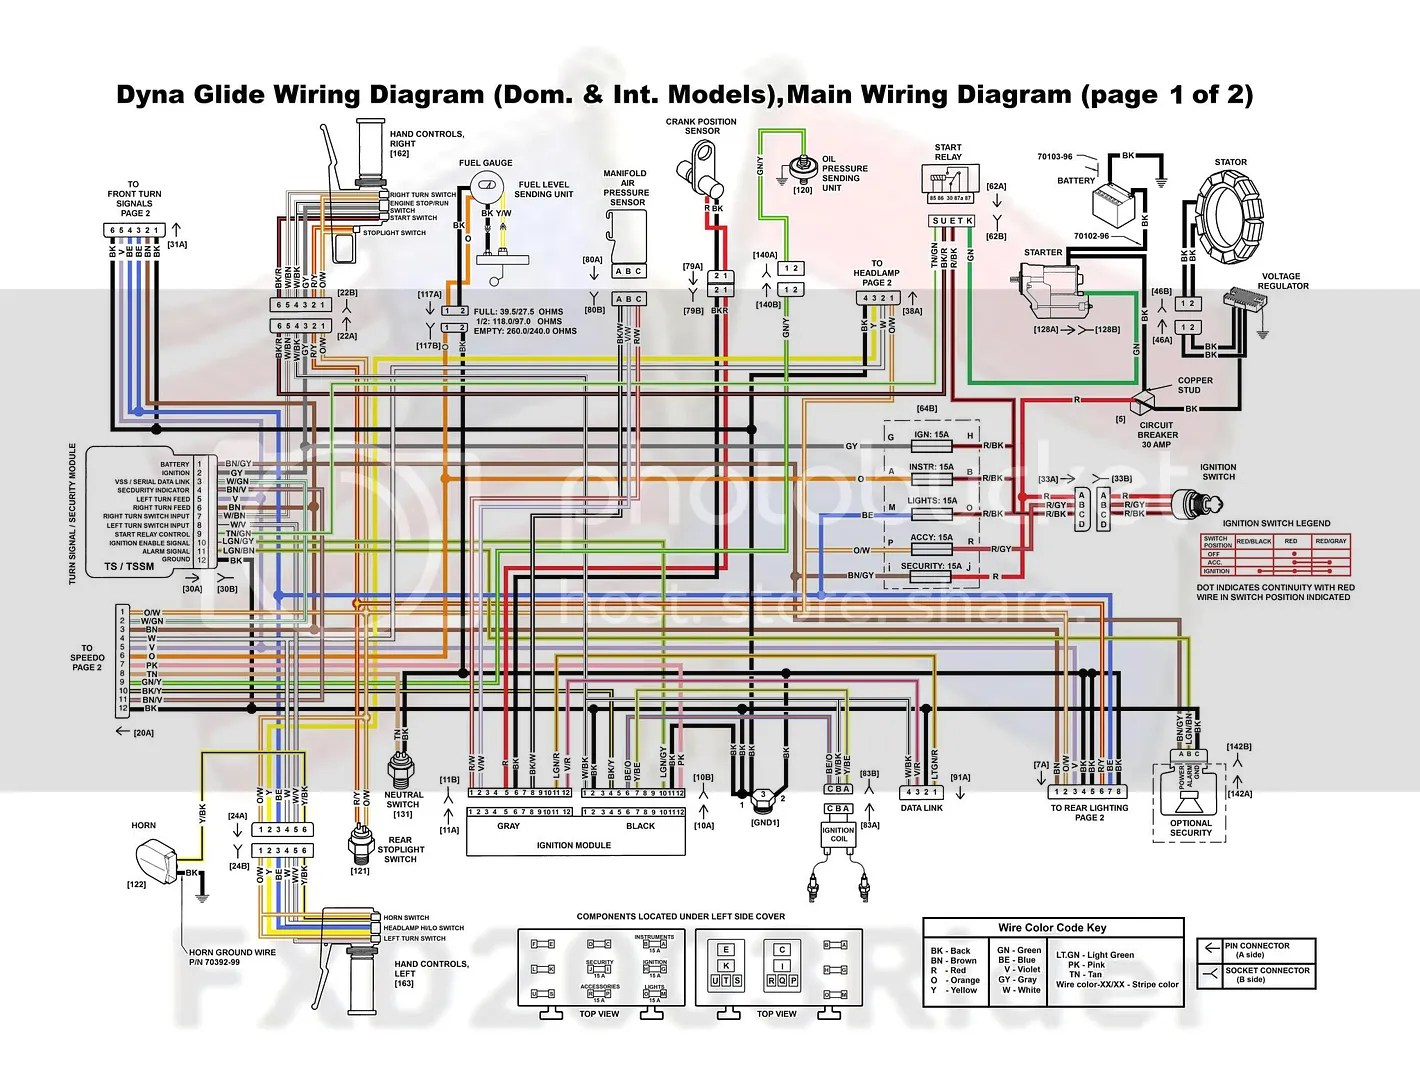 93 sportster wiring harness just wiring diagram 93 sportster wiring harness [ 1420 x 1080 Pixel ]